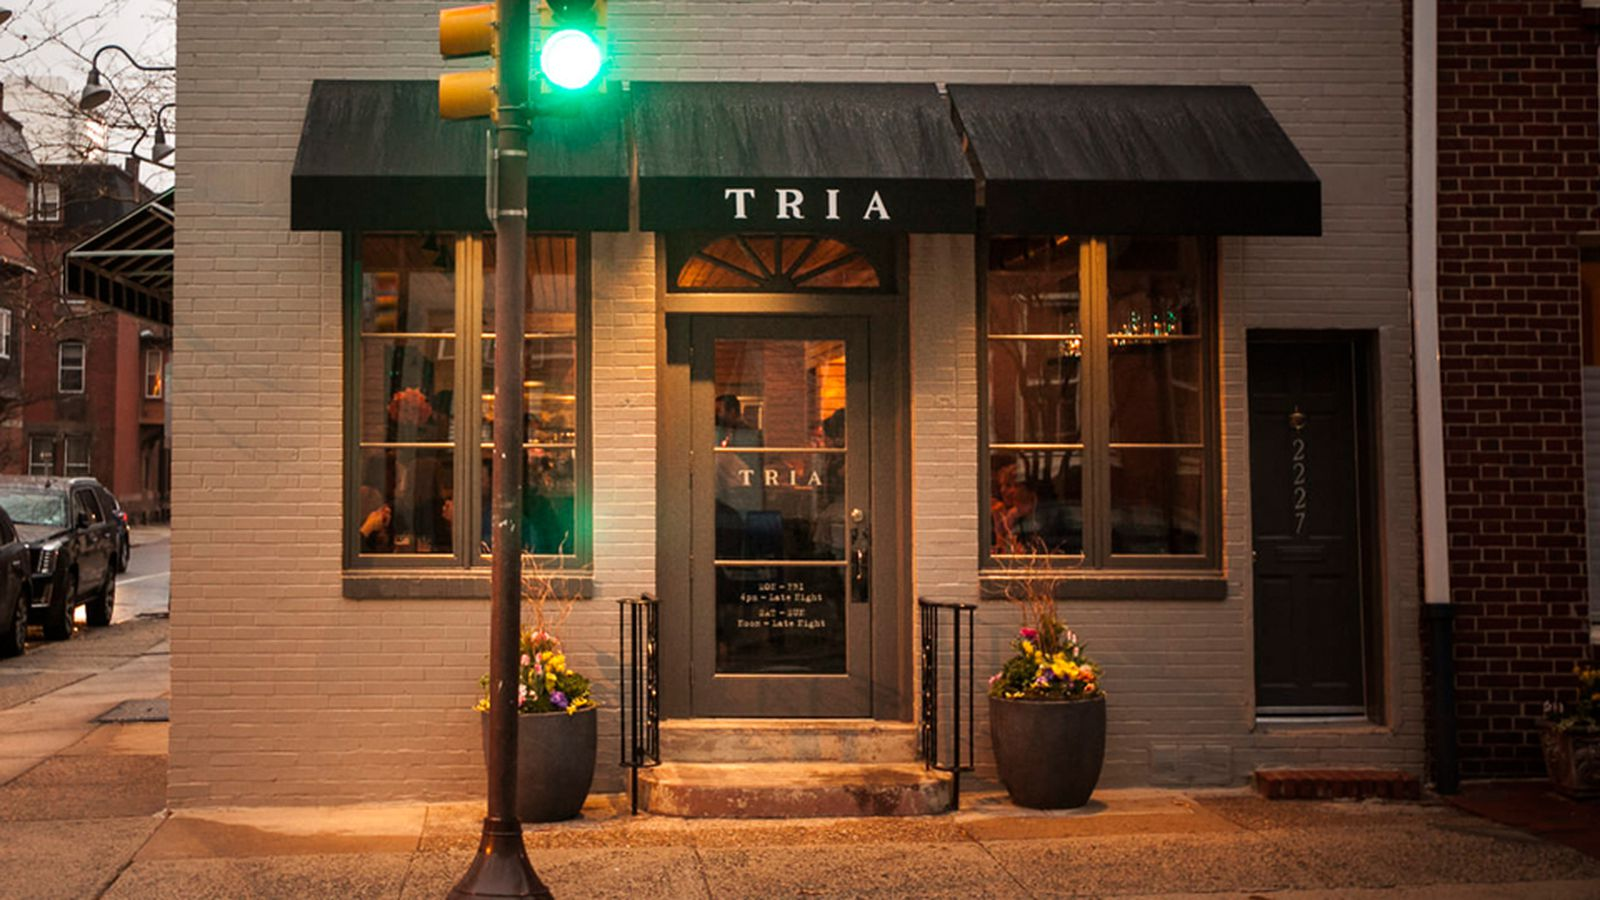 Each Sunday afternoon, Tria Rittenhouse and Tria Washington Square West will feature a new winery with a guest winemaker present at one of the locations during their weekly Sunday School. Every week, Tria's Sunday School features a different, unique wine and cheese and at low prices.